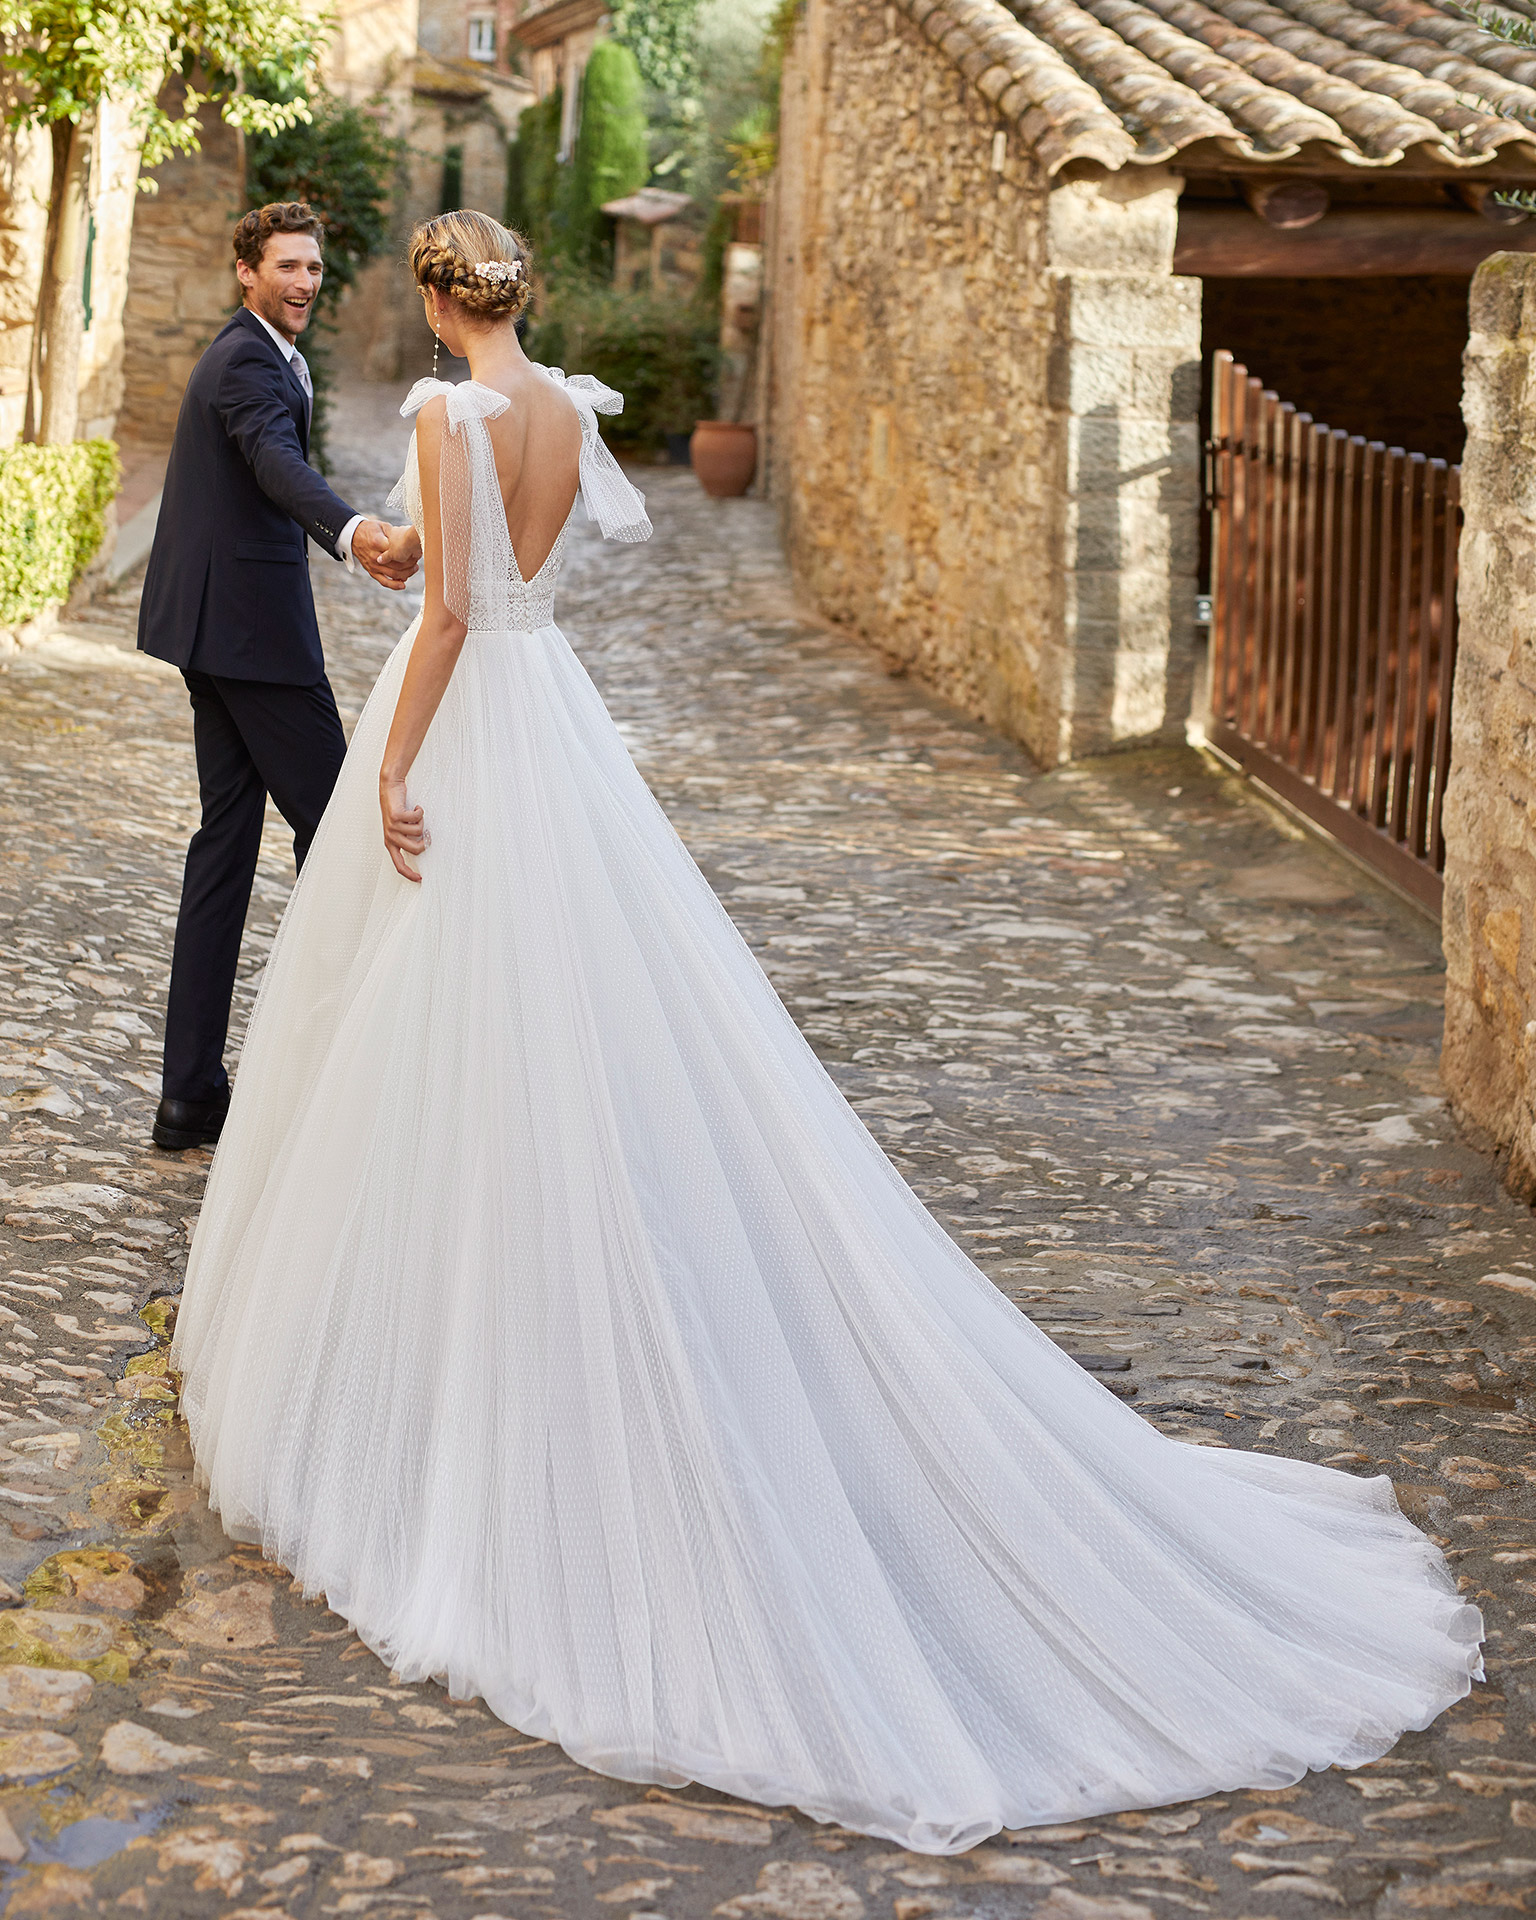 Romantic princess wedding dress with a lace bodice with slight draped dot tulle. V-neckline and plunging back. Alma Novia model in dot tulle. 2022 ALMANOVIA Collection.